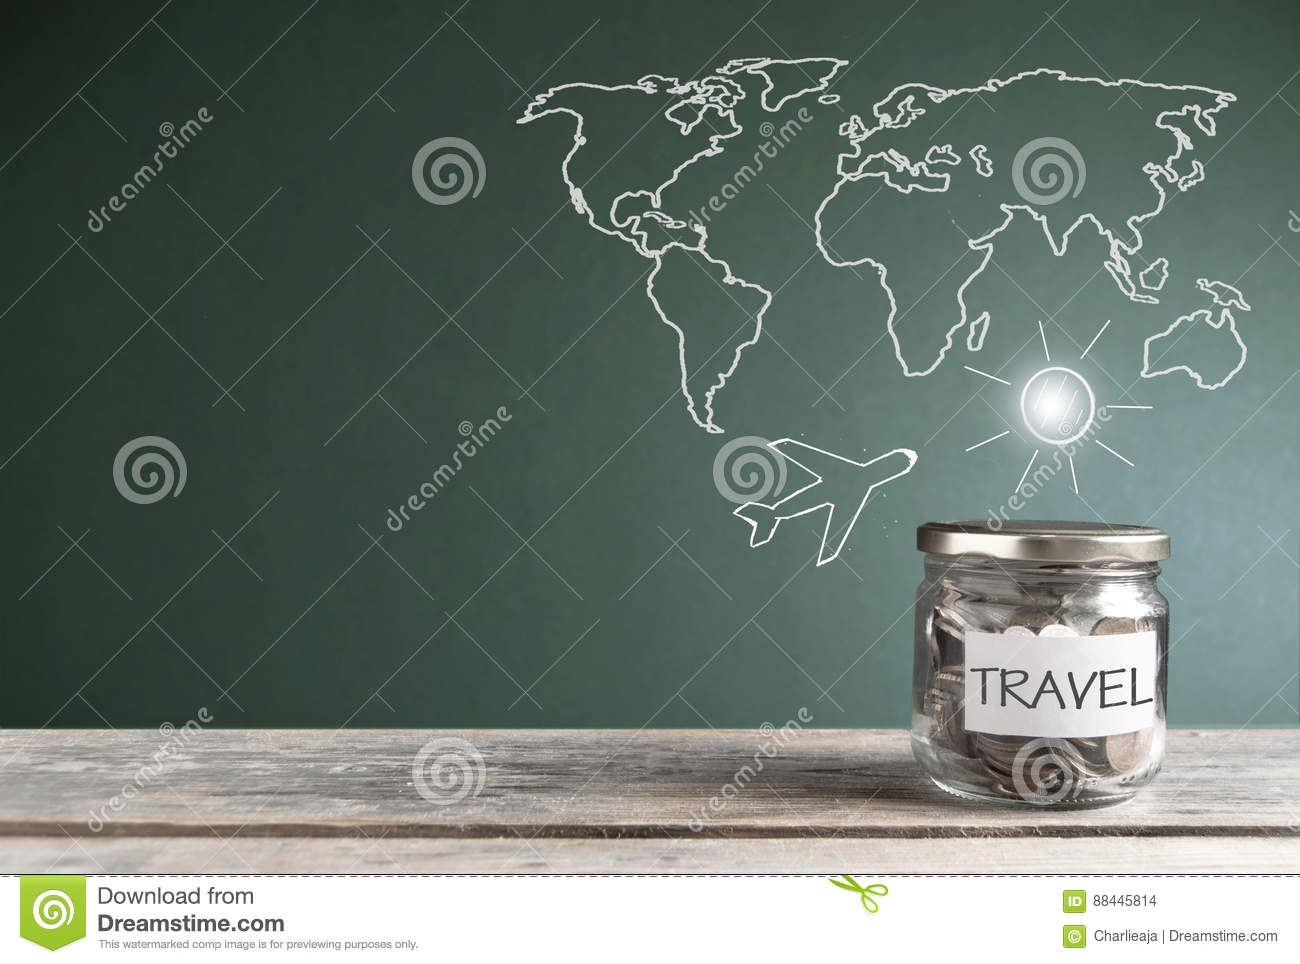 Travel plans background stock photo image of vacation 88445814 royalty free stock photo gumiabroncs Gallery